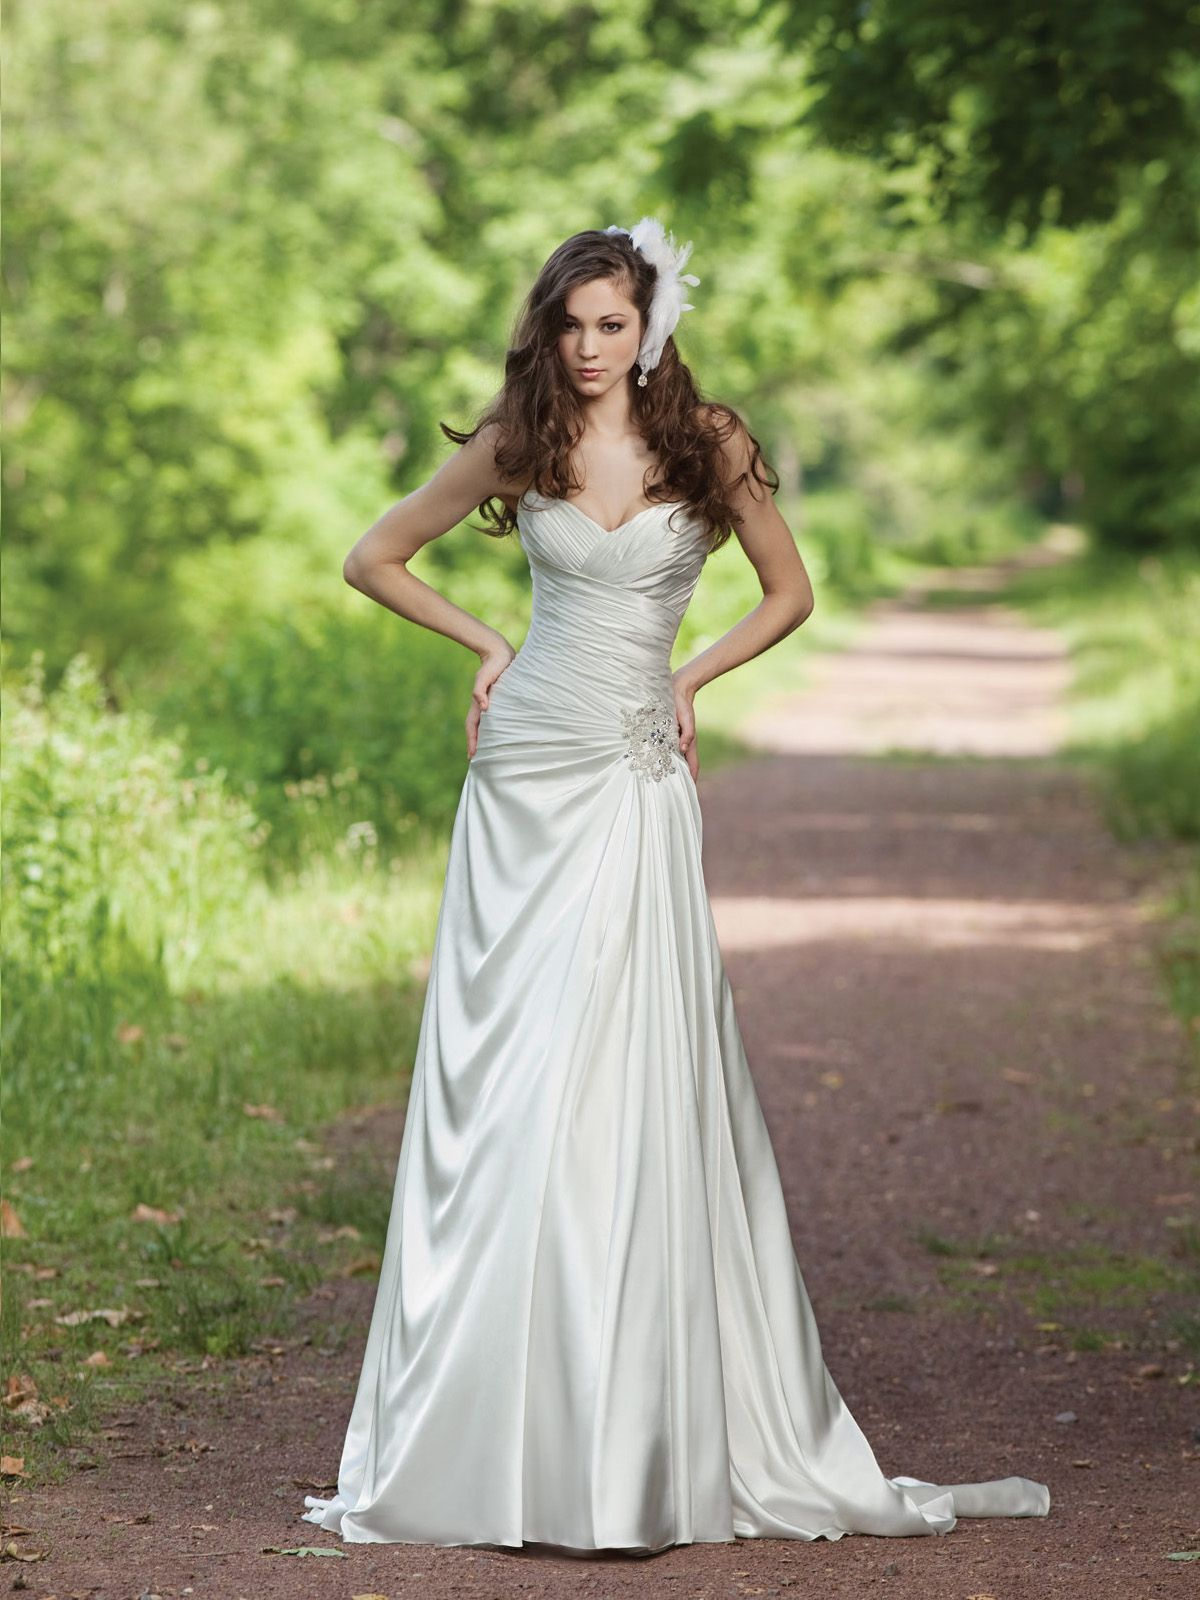 Aline wedding dress  The top is gorgeous  Wedding dresses  Pinterest  Chapel train